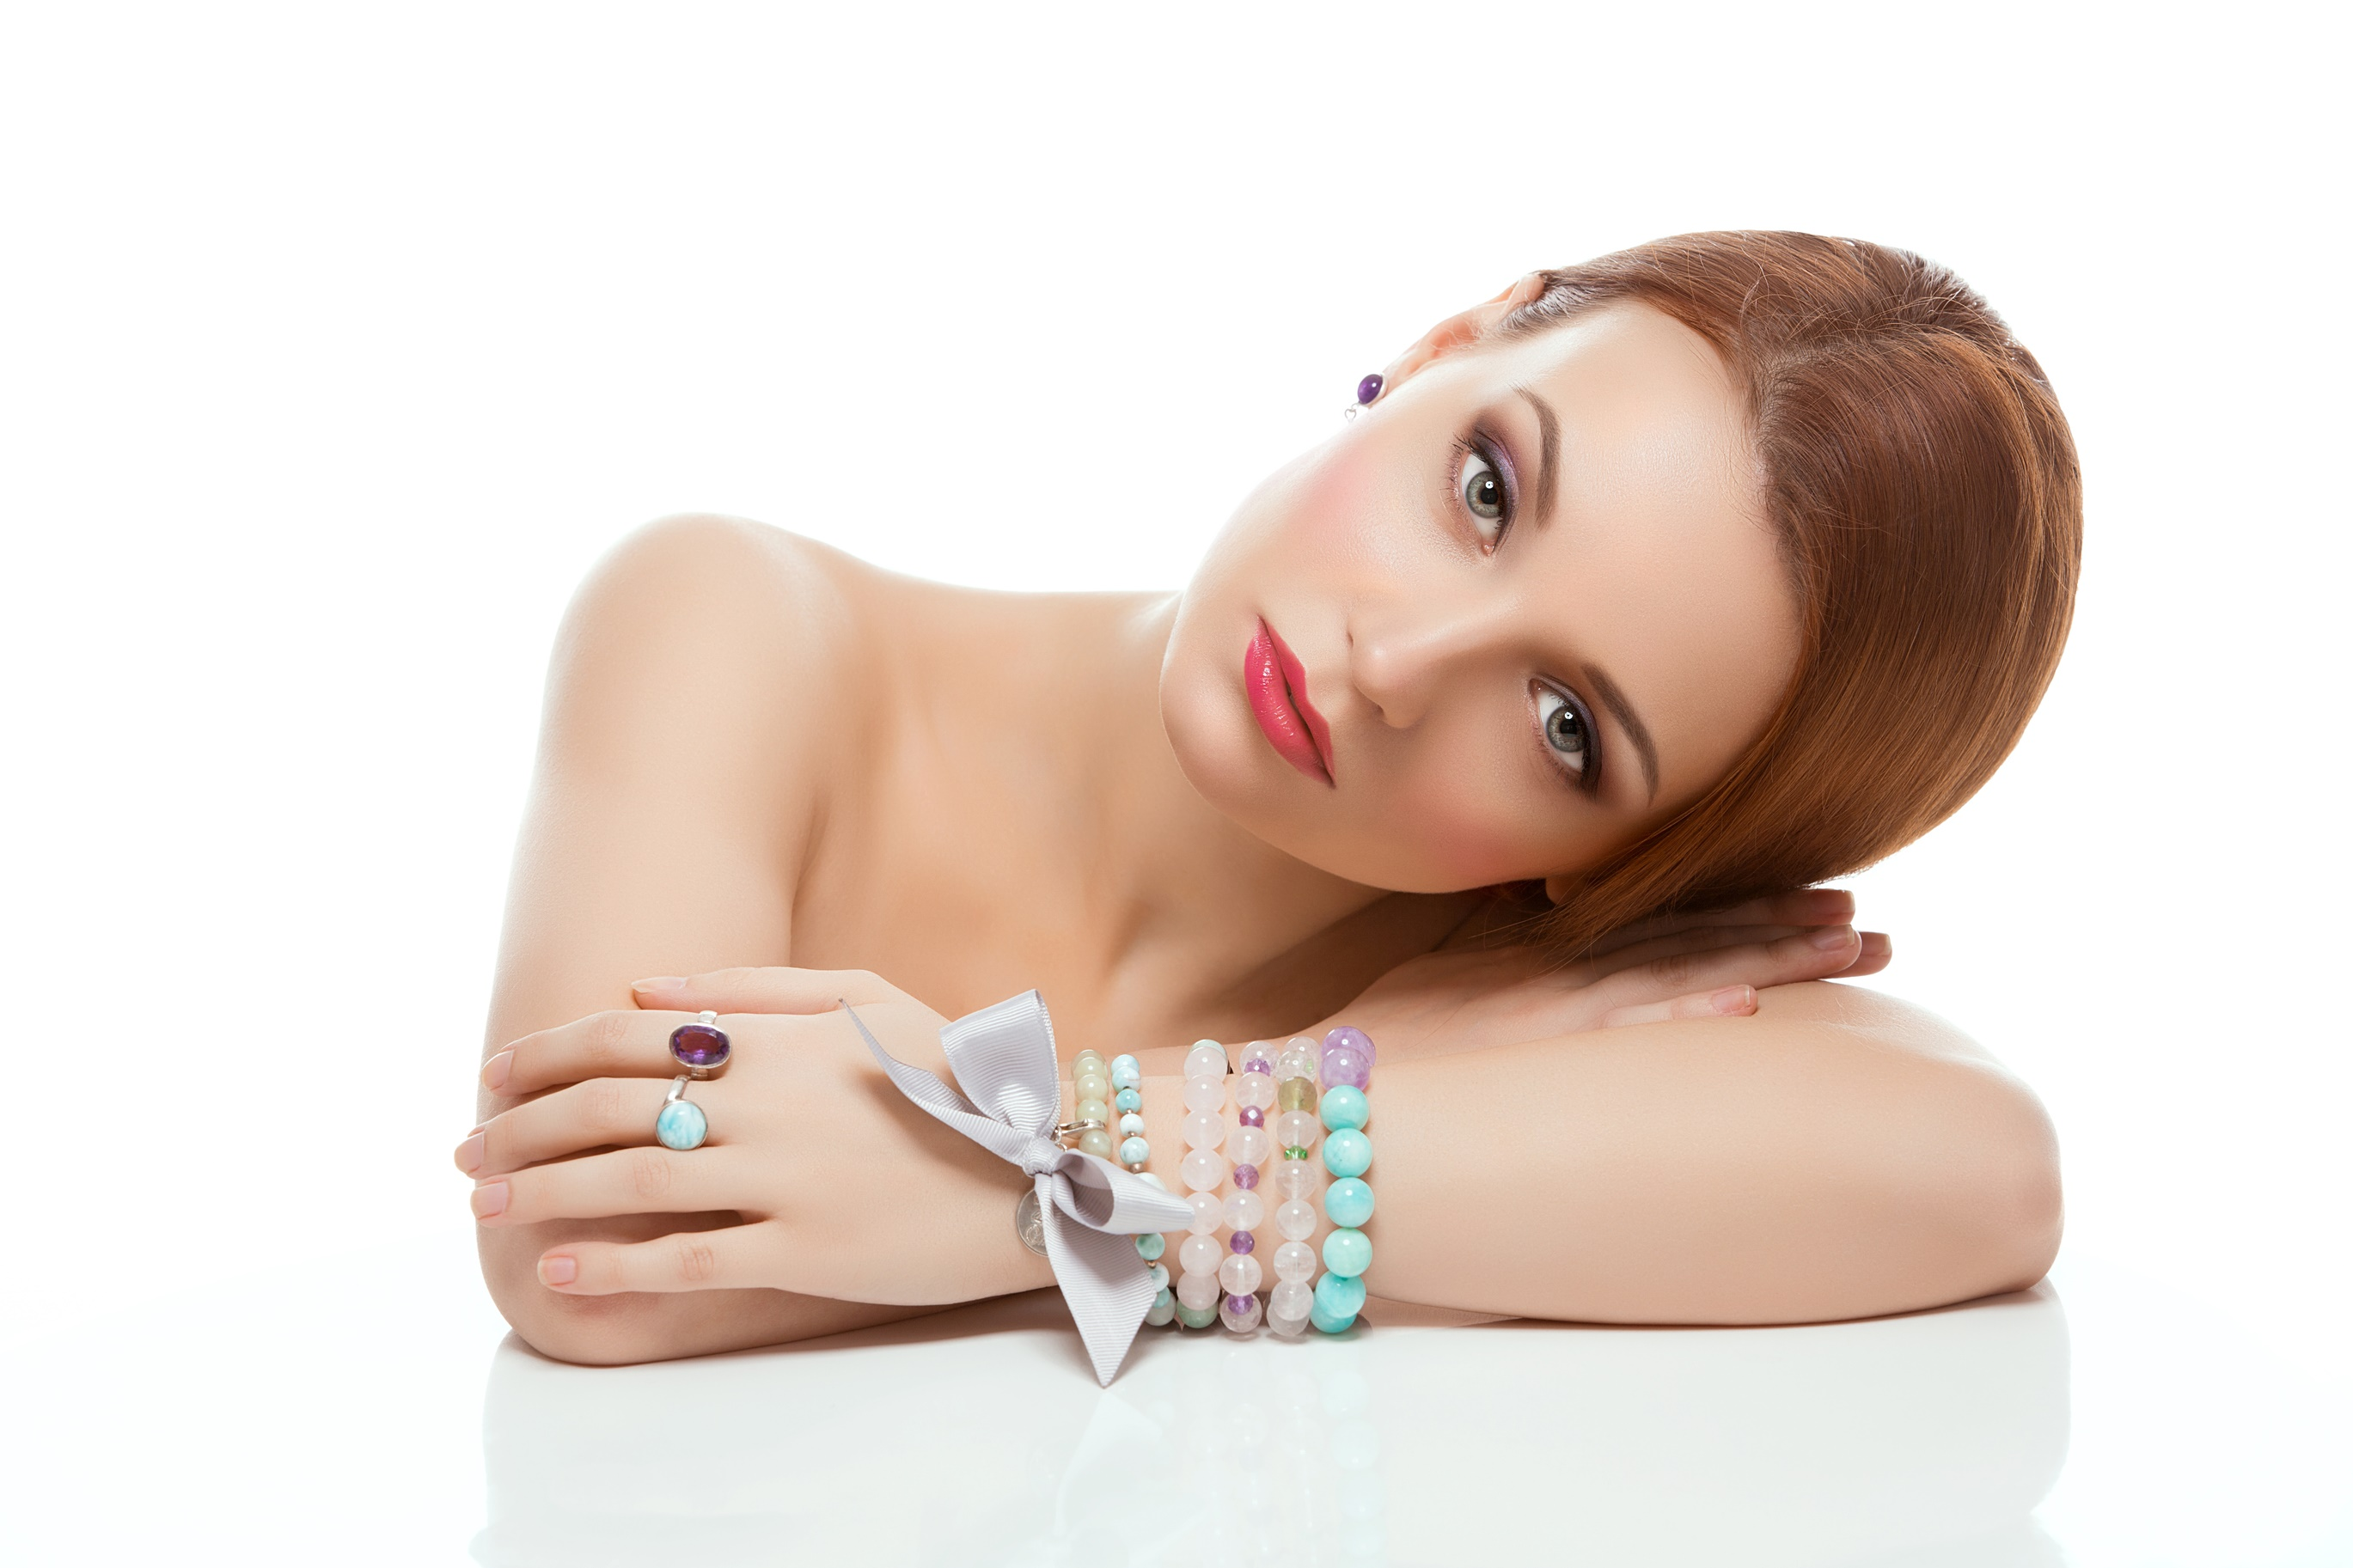 kristals jewelry explians which gemstones are most popular such as pearls rose quartz and amethyst